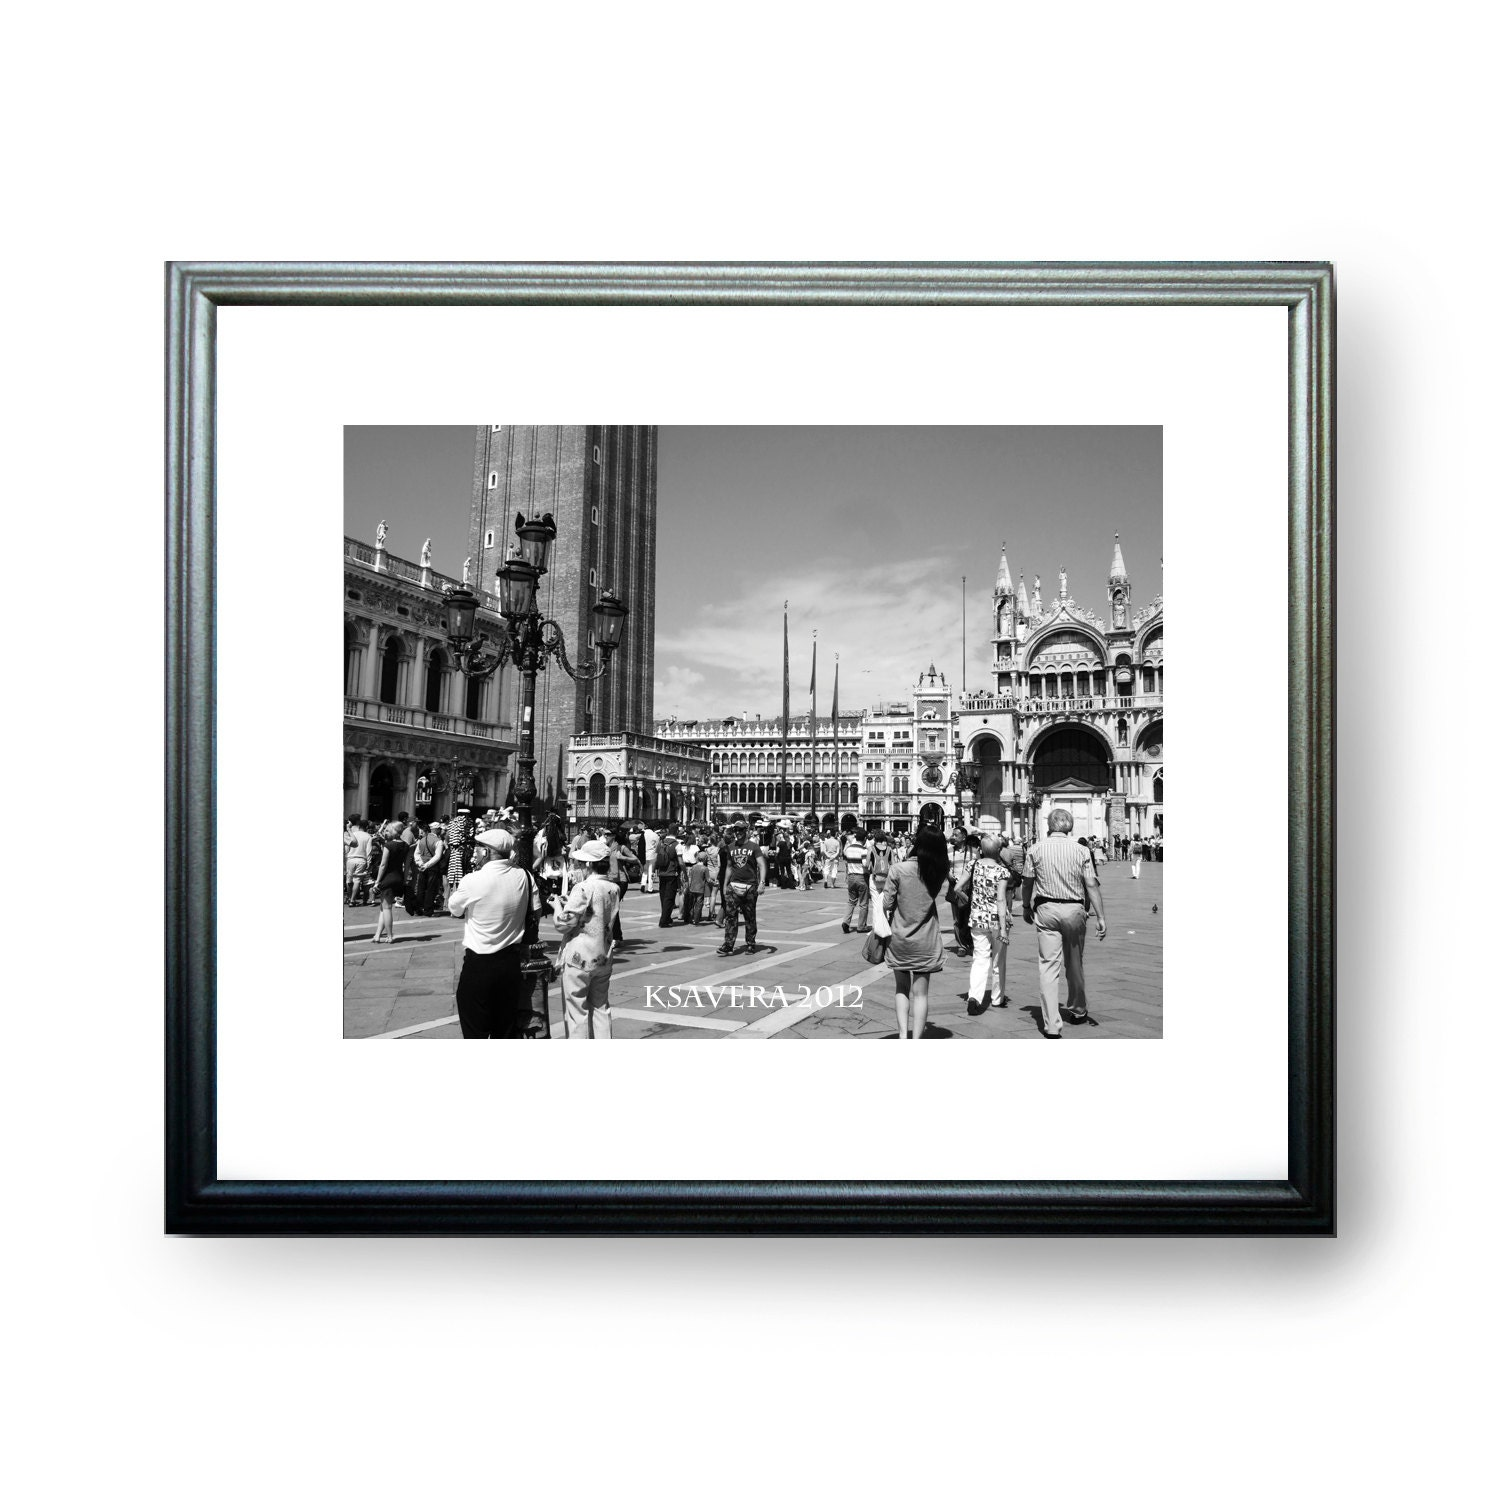 Venice Photography Collection black and white photo V14 Monochromatic venetian fine art wall decor KSAVERA JPEG via E-mail Printable - KsaveraART